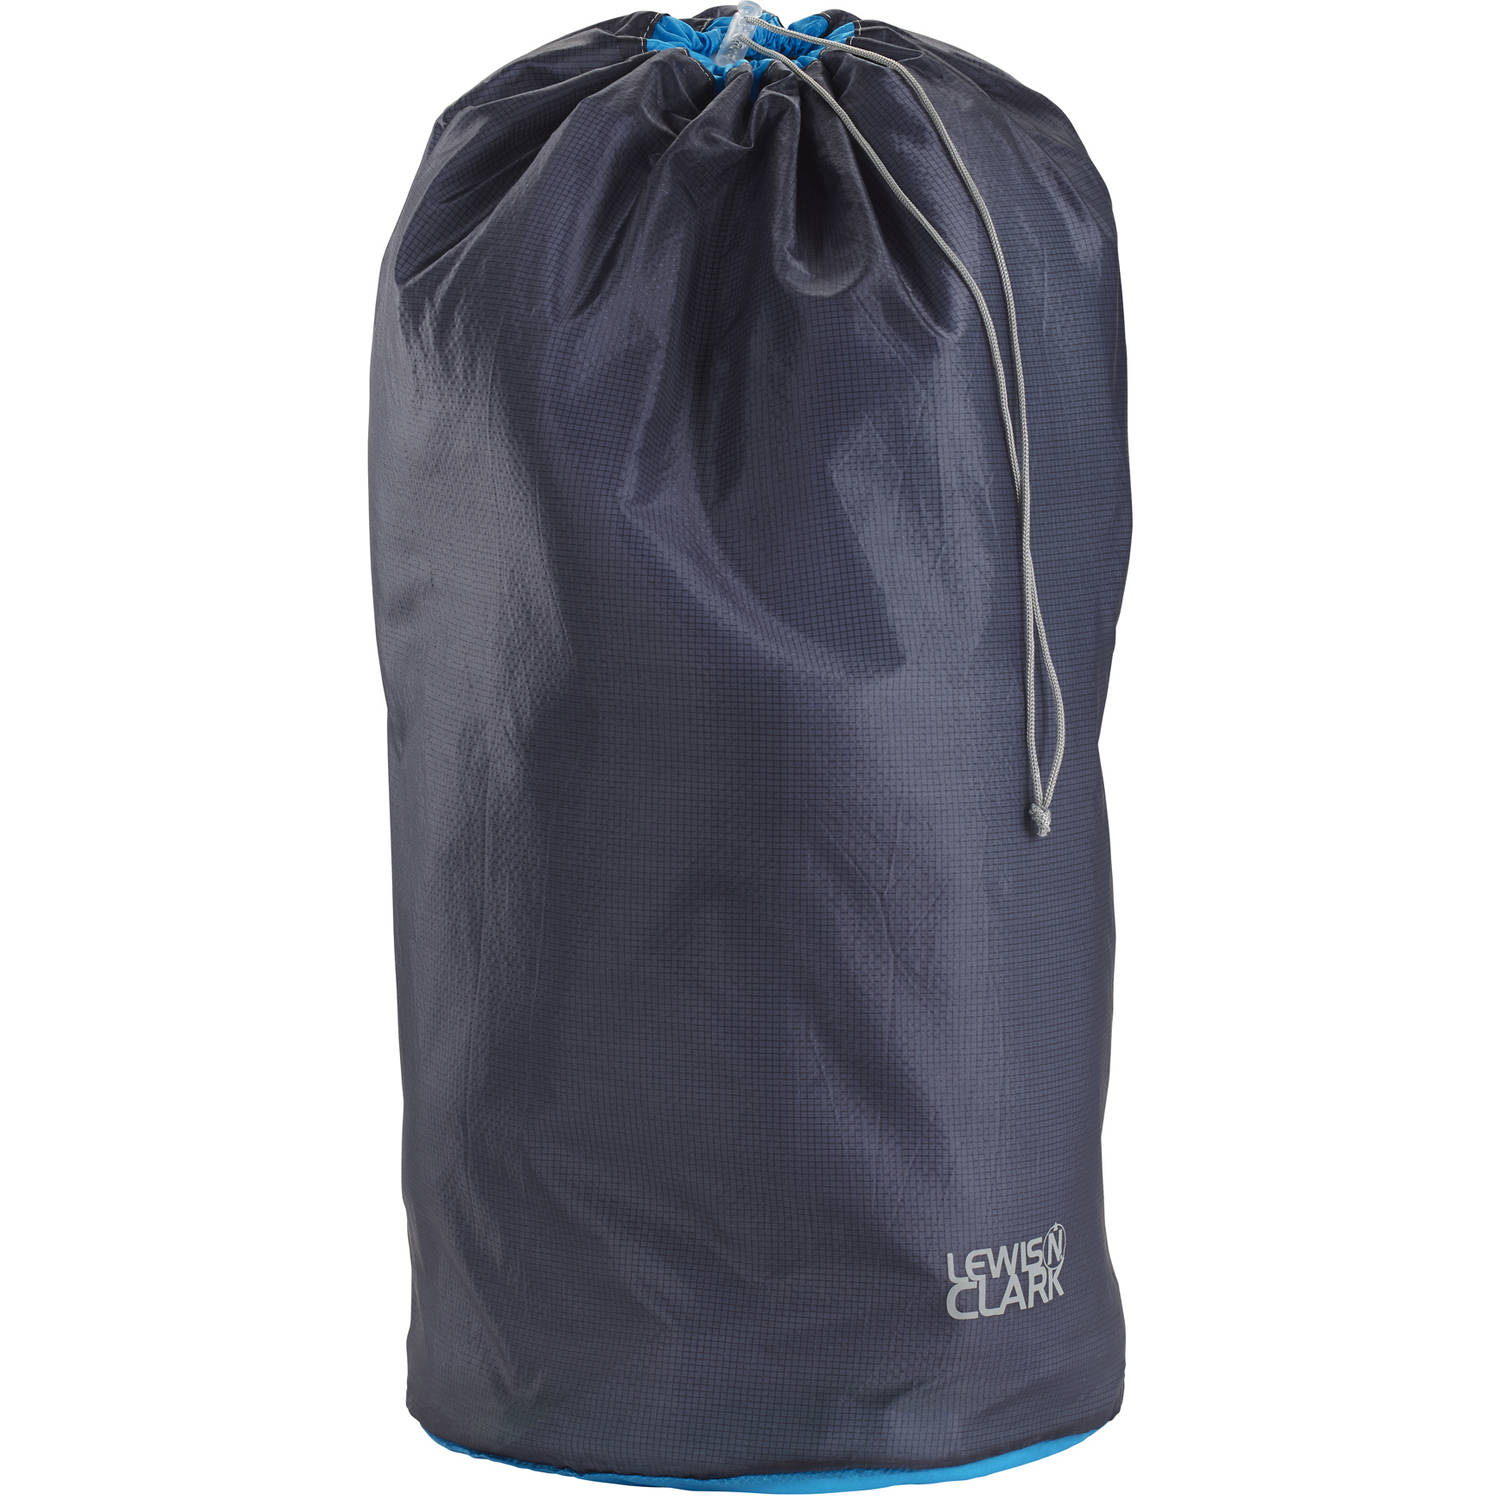 "ElectroLight Stuff Sack, 24"" x 11"", Charcoal/Bright Blue"